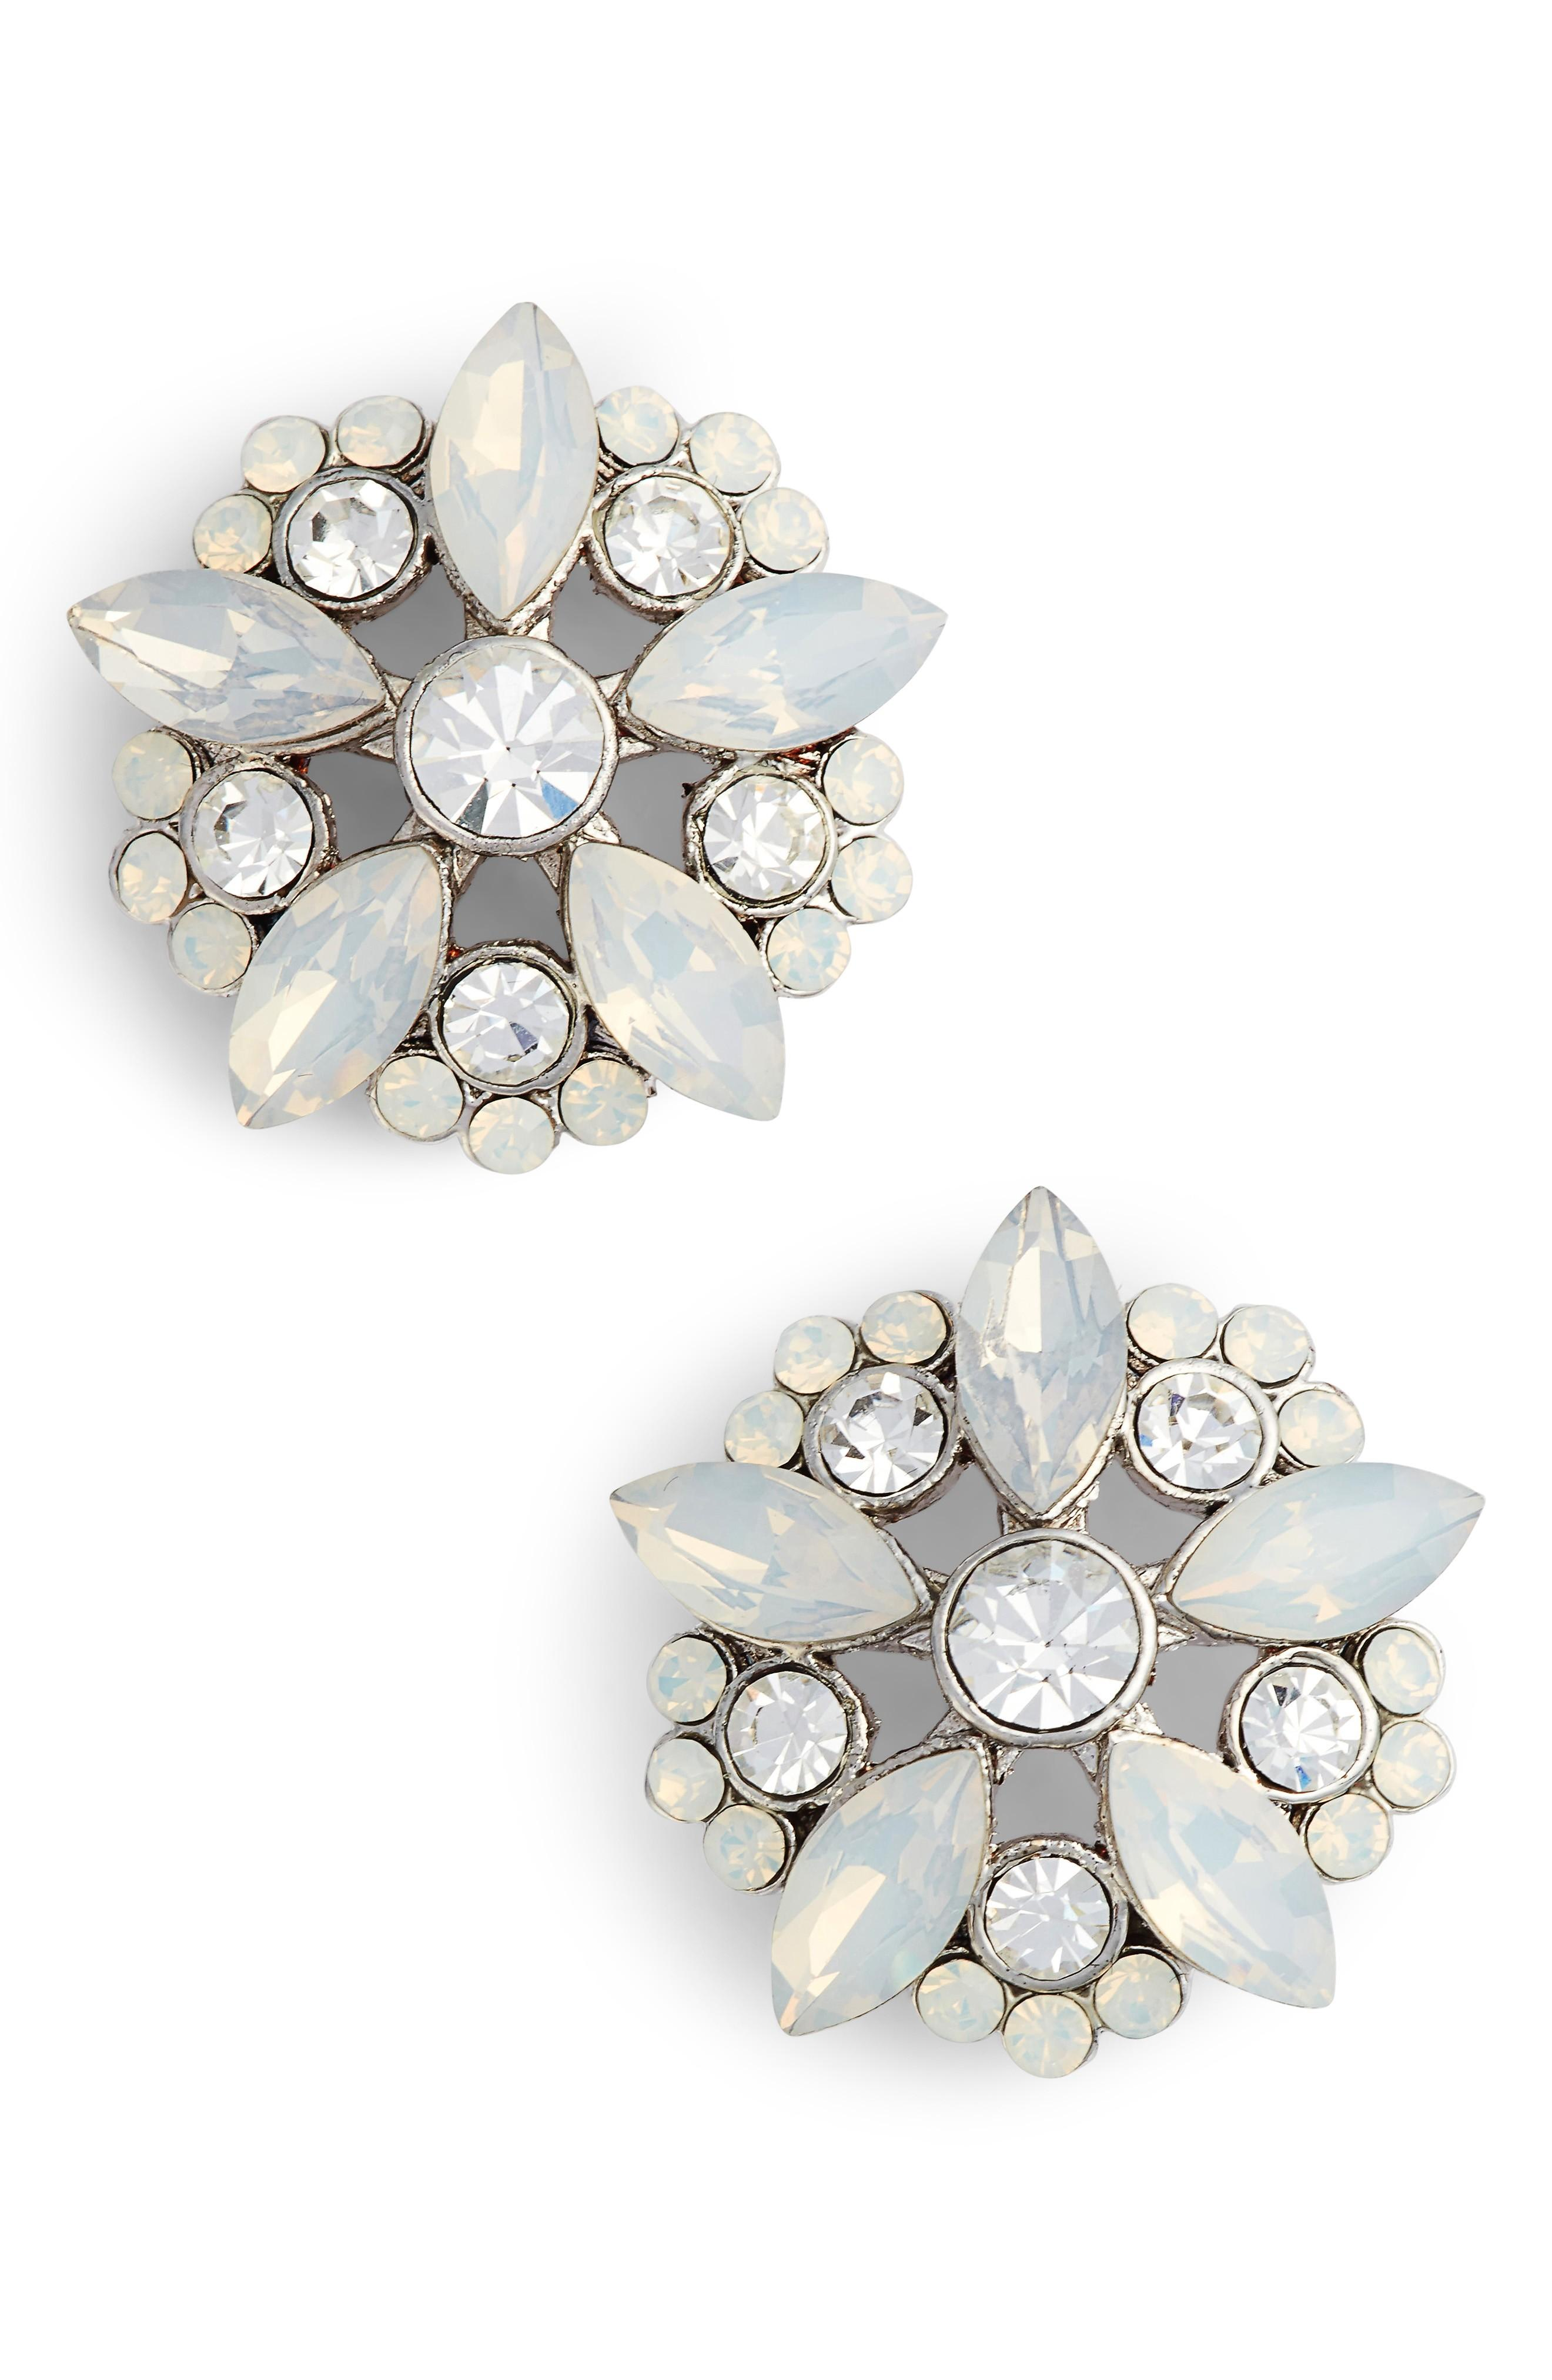 Nina Floral Stud Earrings In Silver/ Opal/ White Crystal